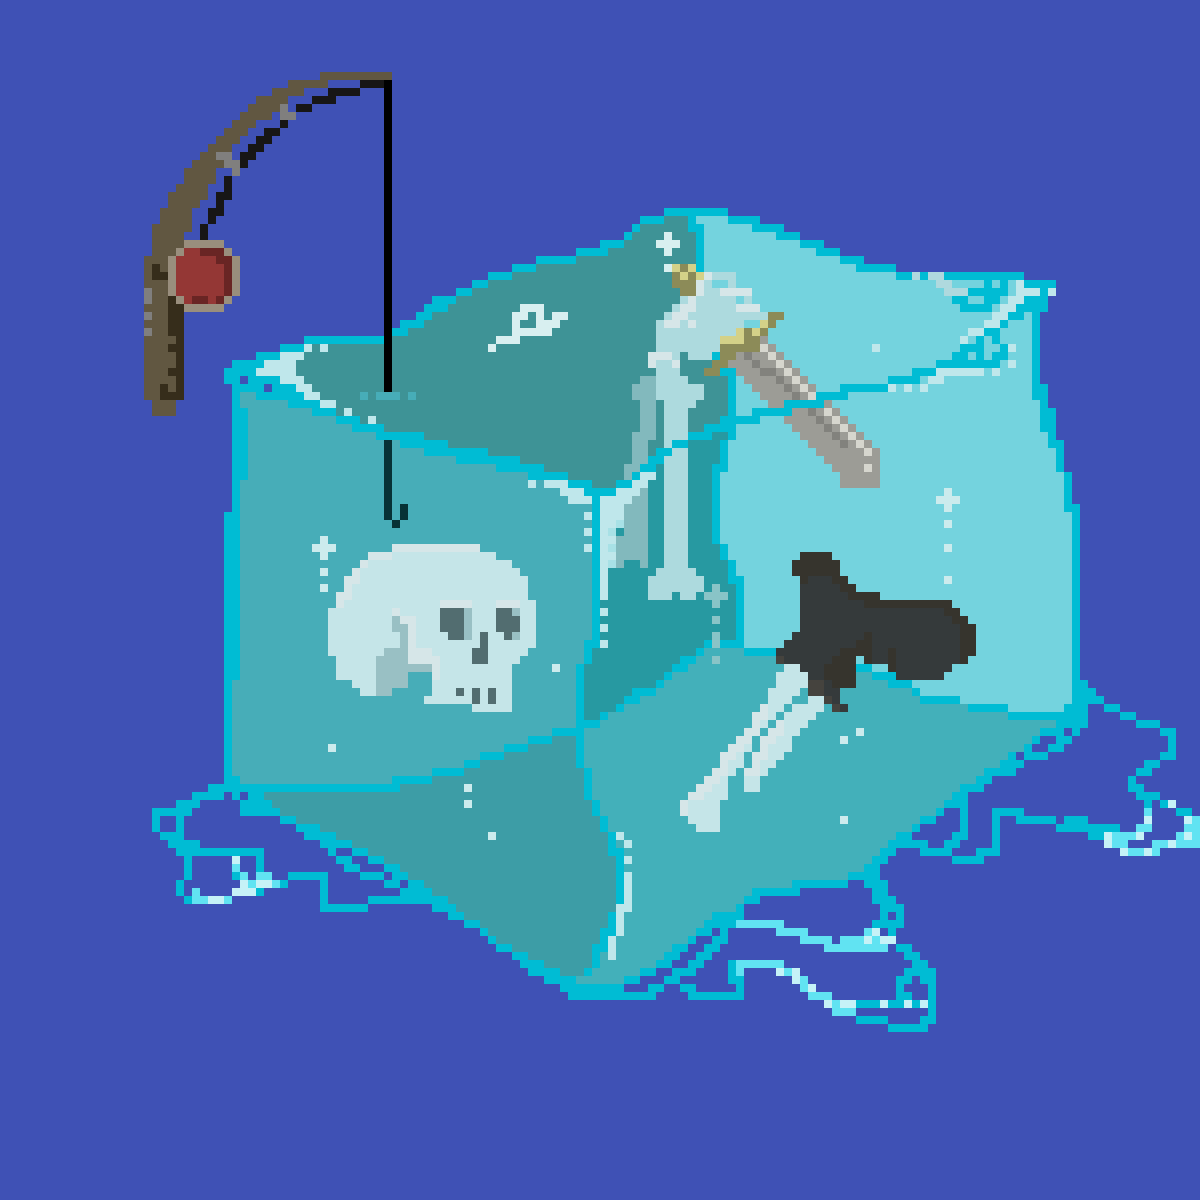 FISHING IN A GELATINOUS CUBE by INSAN3CTRL